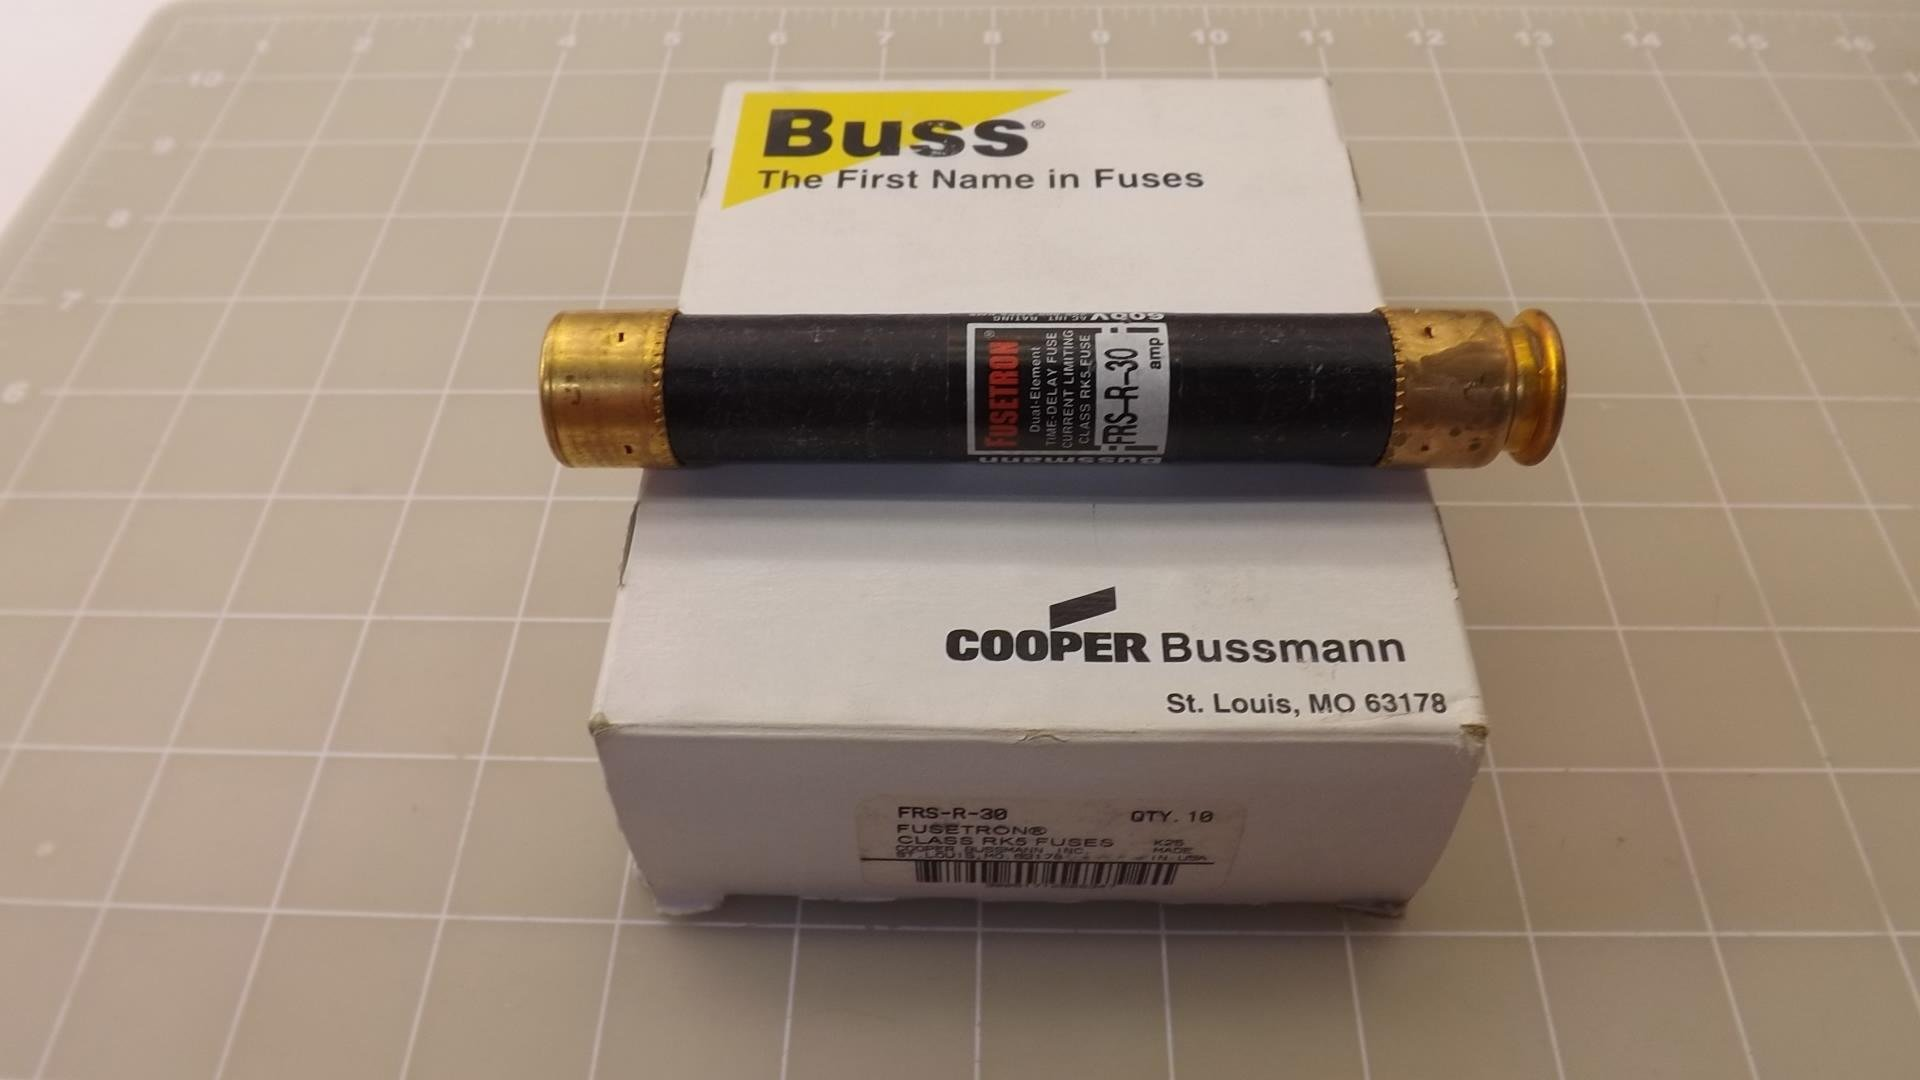 Lot of 10 Buss, Fusetorn FRS-R-30 Class RK5 Fuses T24306